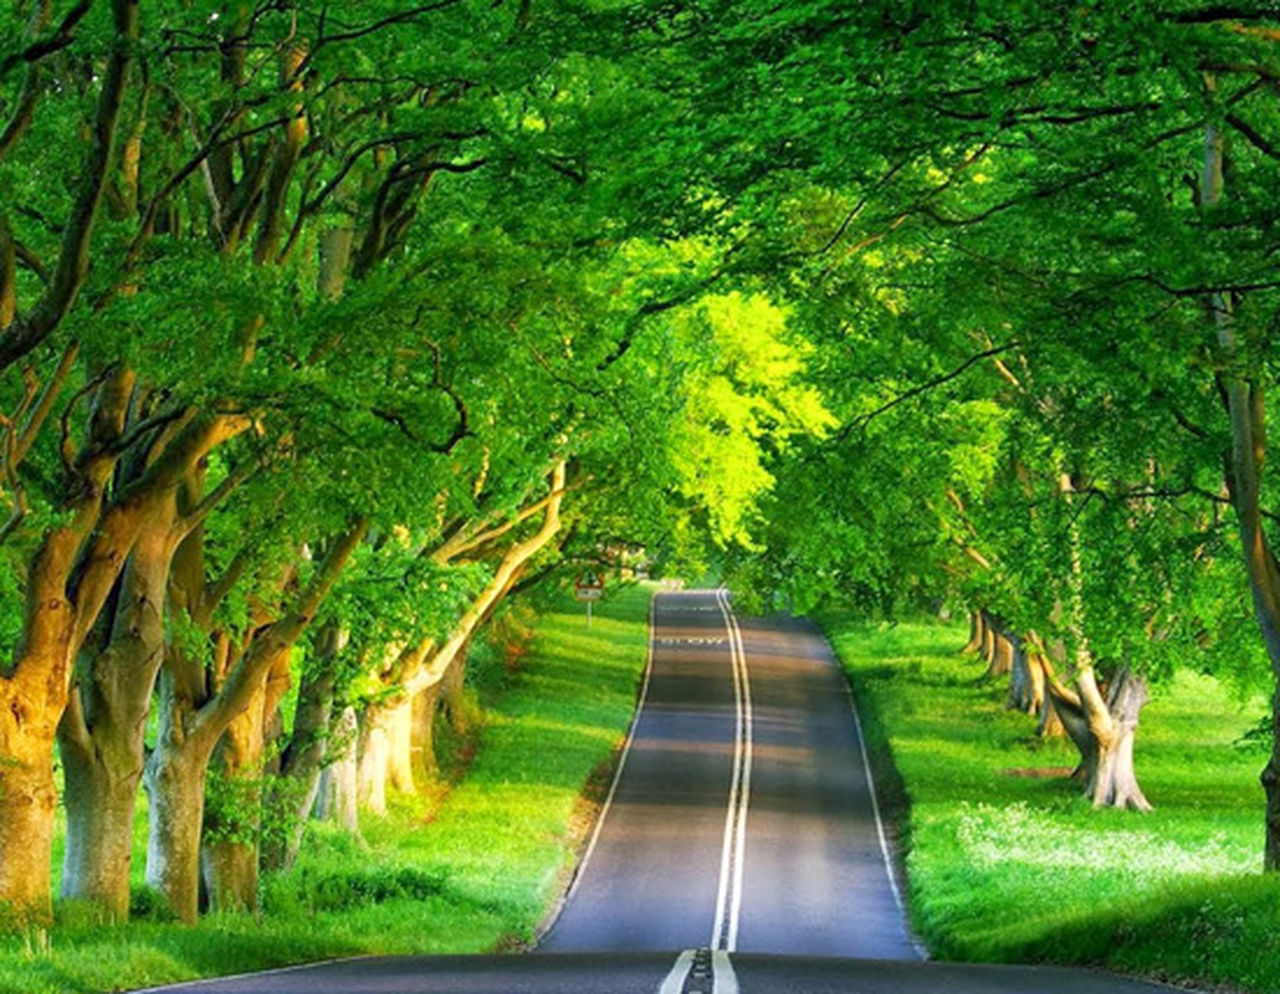 tree, road, nature, green color, growth, transportation, the way forward, outdoors, day, no people, grass, beauty in nature, mammal, animal themes